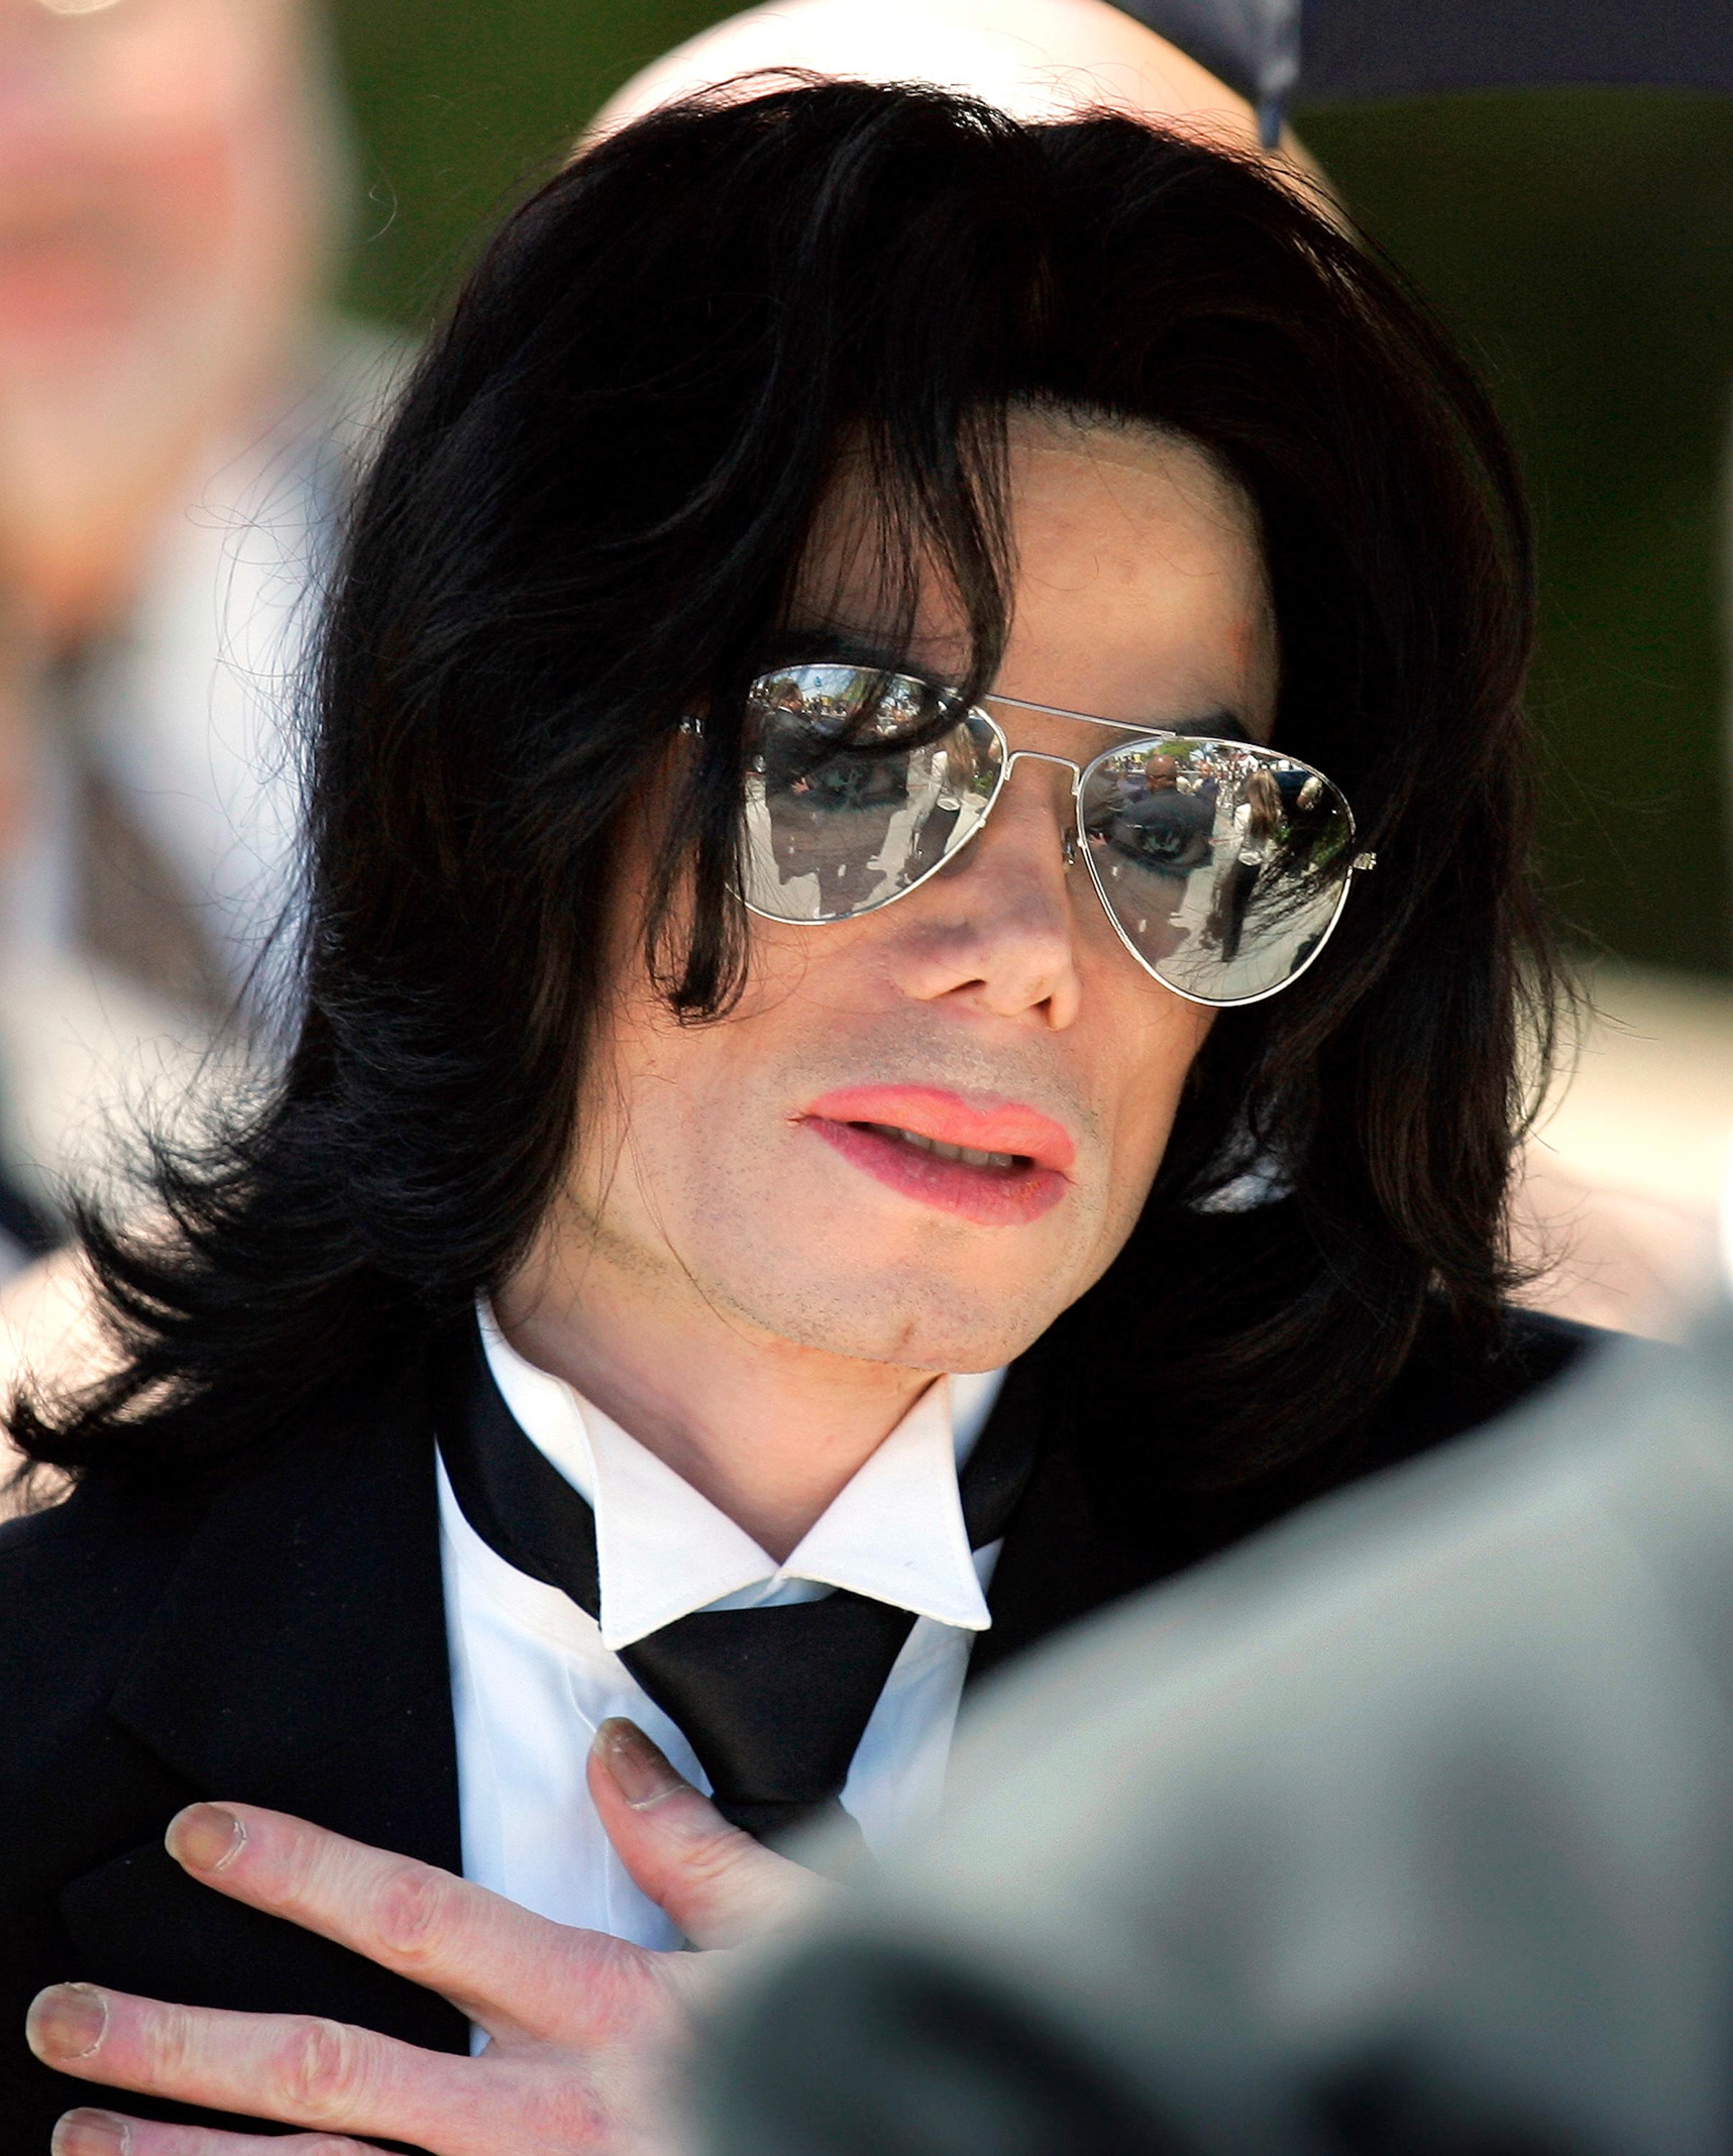 FILE - In this June 13, 2005 photo, Michael Jackson gestures as he leaves court during his trial on child molestation charges in Santa Maria, Calif. Wade Robson, who is now 35, testified at Jackson's criminal trial in 2005 that he had spent many nights in Jackson's room, but Jackson had never molested him. A judge has dismissed the lawsuit brought by Robson, who alleged Jackson molested him as a child. The summary judgment ruling Tuesday, Dec. 19, 2017, against Robson resolves one of the last remaining major claims against the late singer's holdings. (AP Photo/Mark J. Terrill, File)